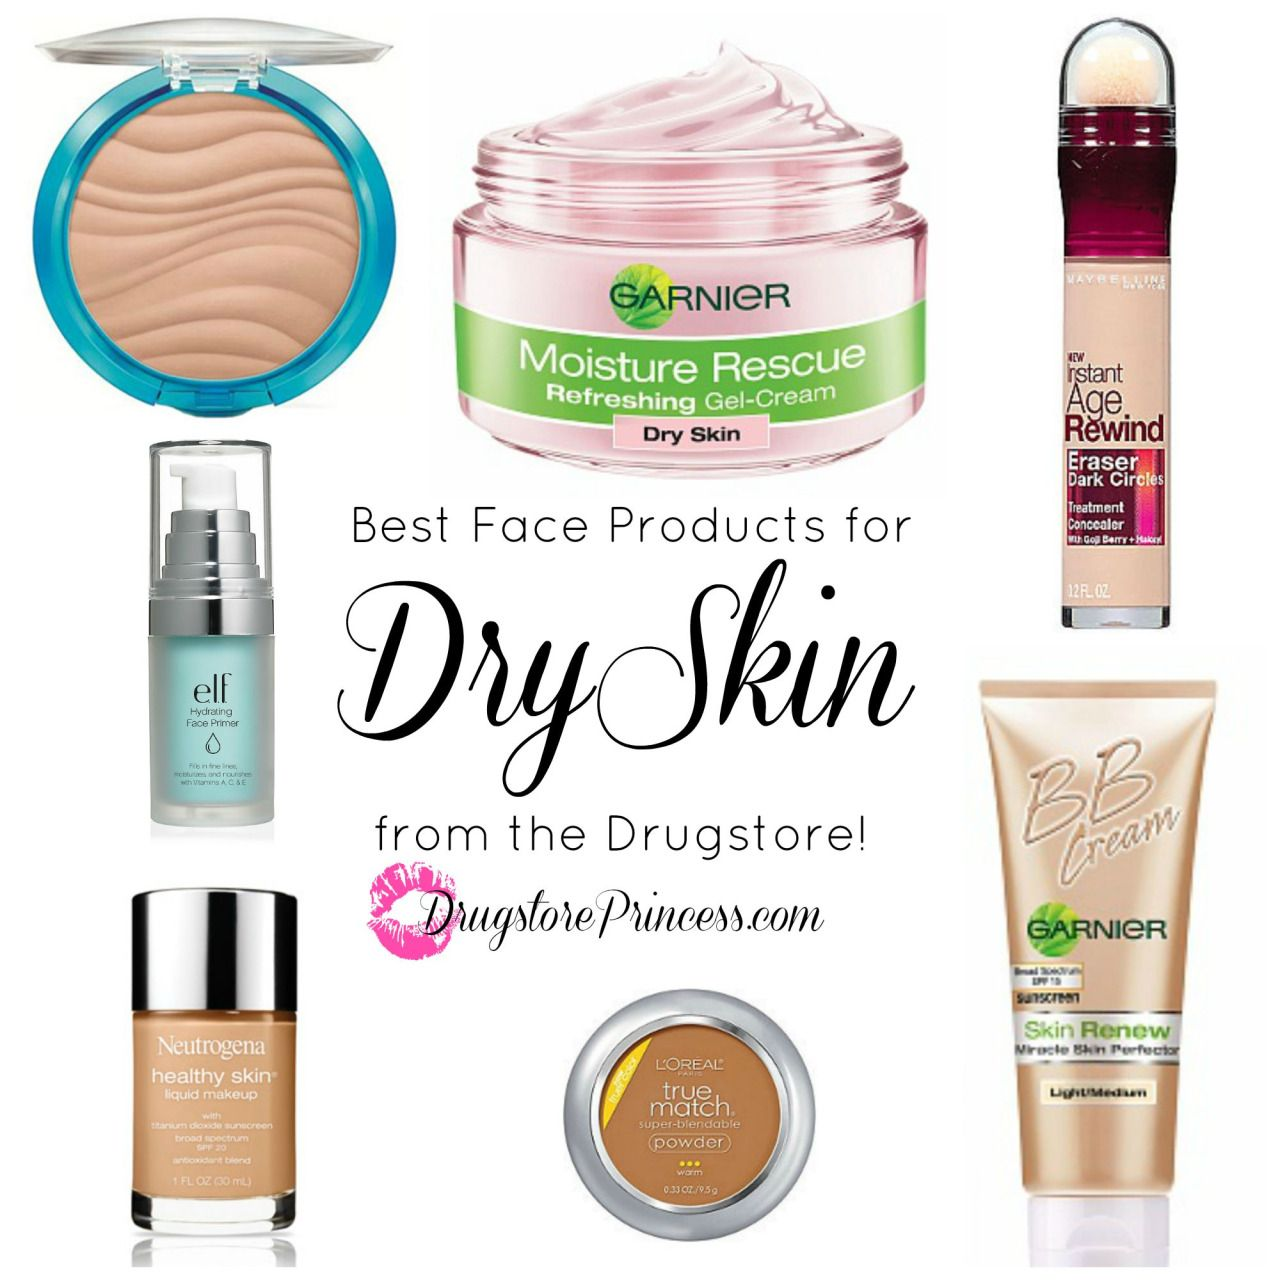 Drugstoreprincess Com S Favorite Face Products For Dry Skin Those Of You With Flaky Patches Tightness And Ro Dry Skin Care Mask For Dry Skin Dry Skin Makeup